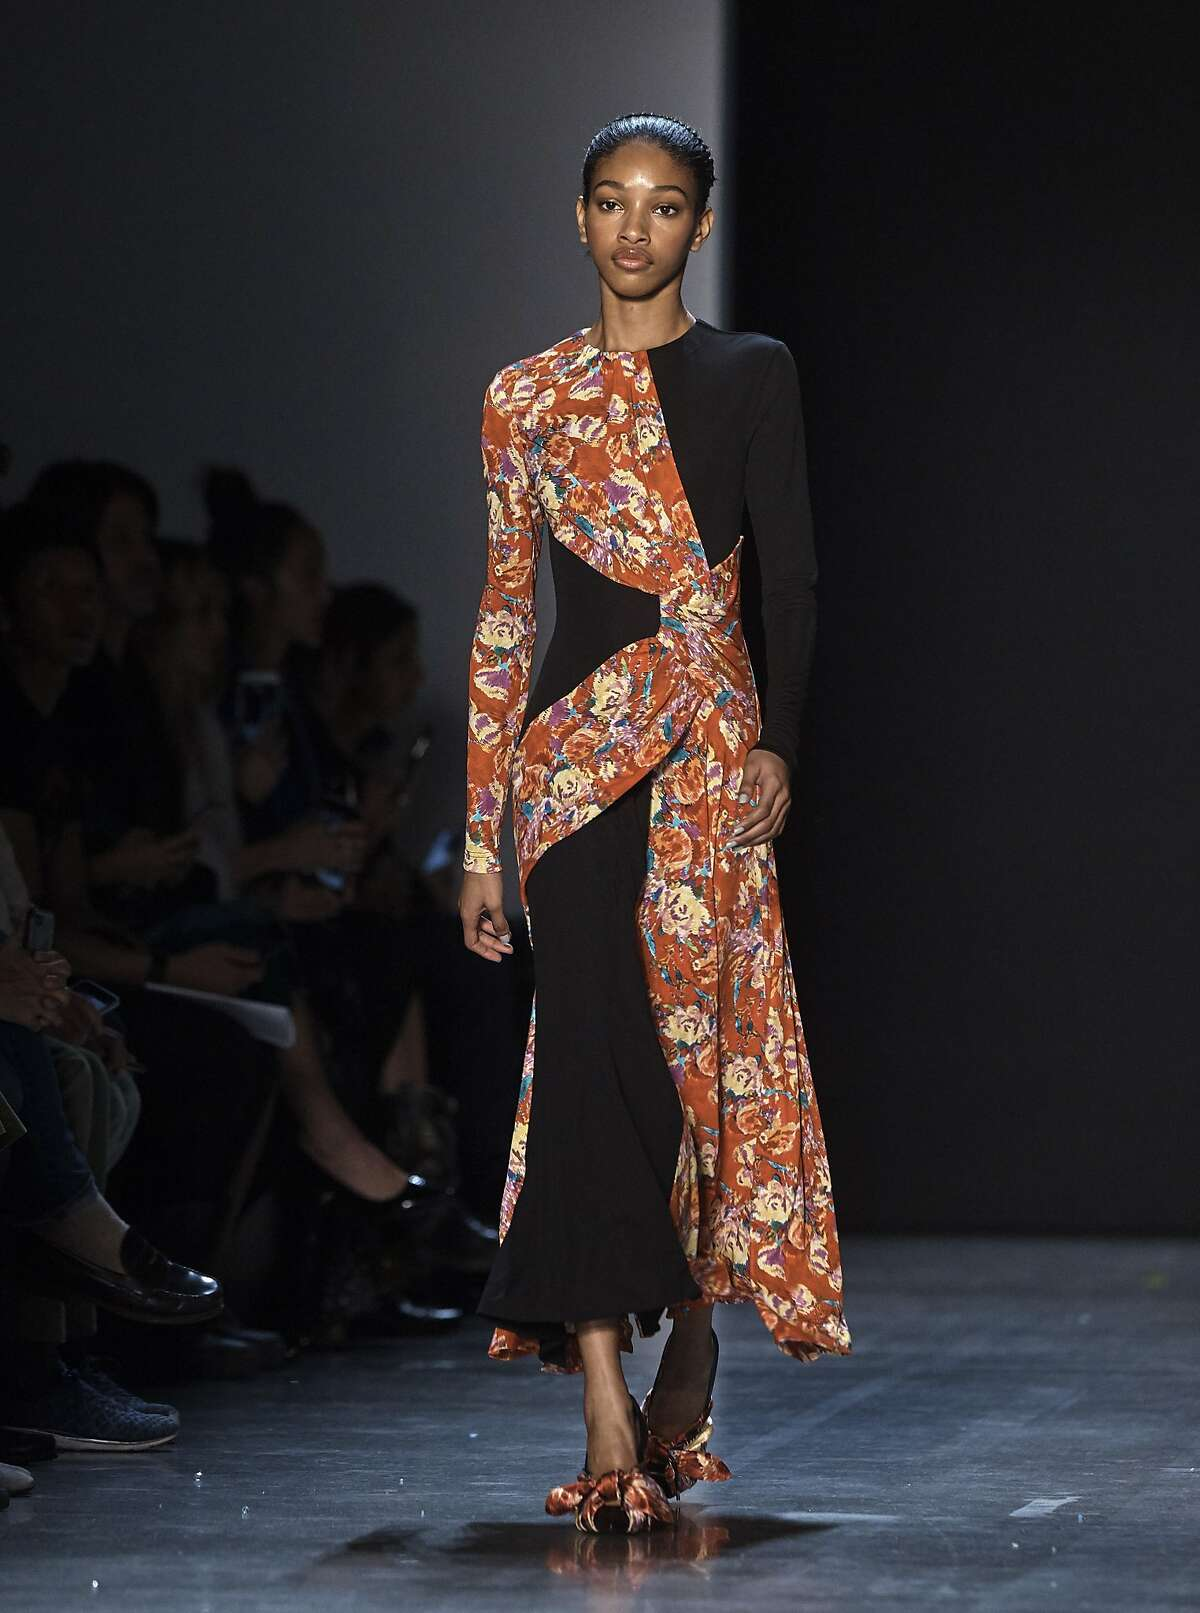 The Prabal Gurung collection is modeled during Fashion Week in New York, Sunday, Feb. 11, 2018. (AP Photo/Andres Kudacki)